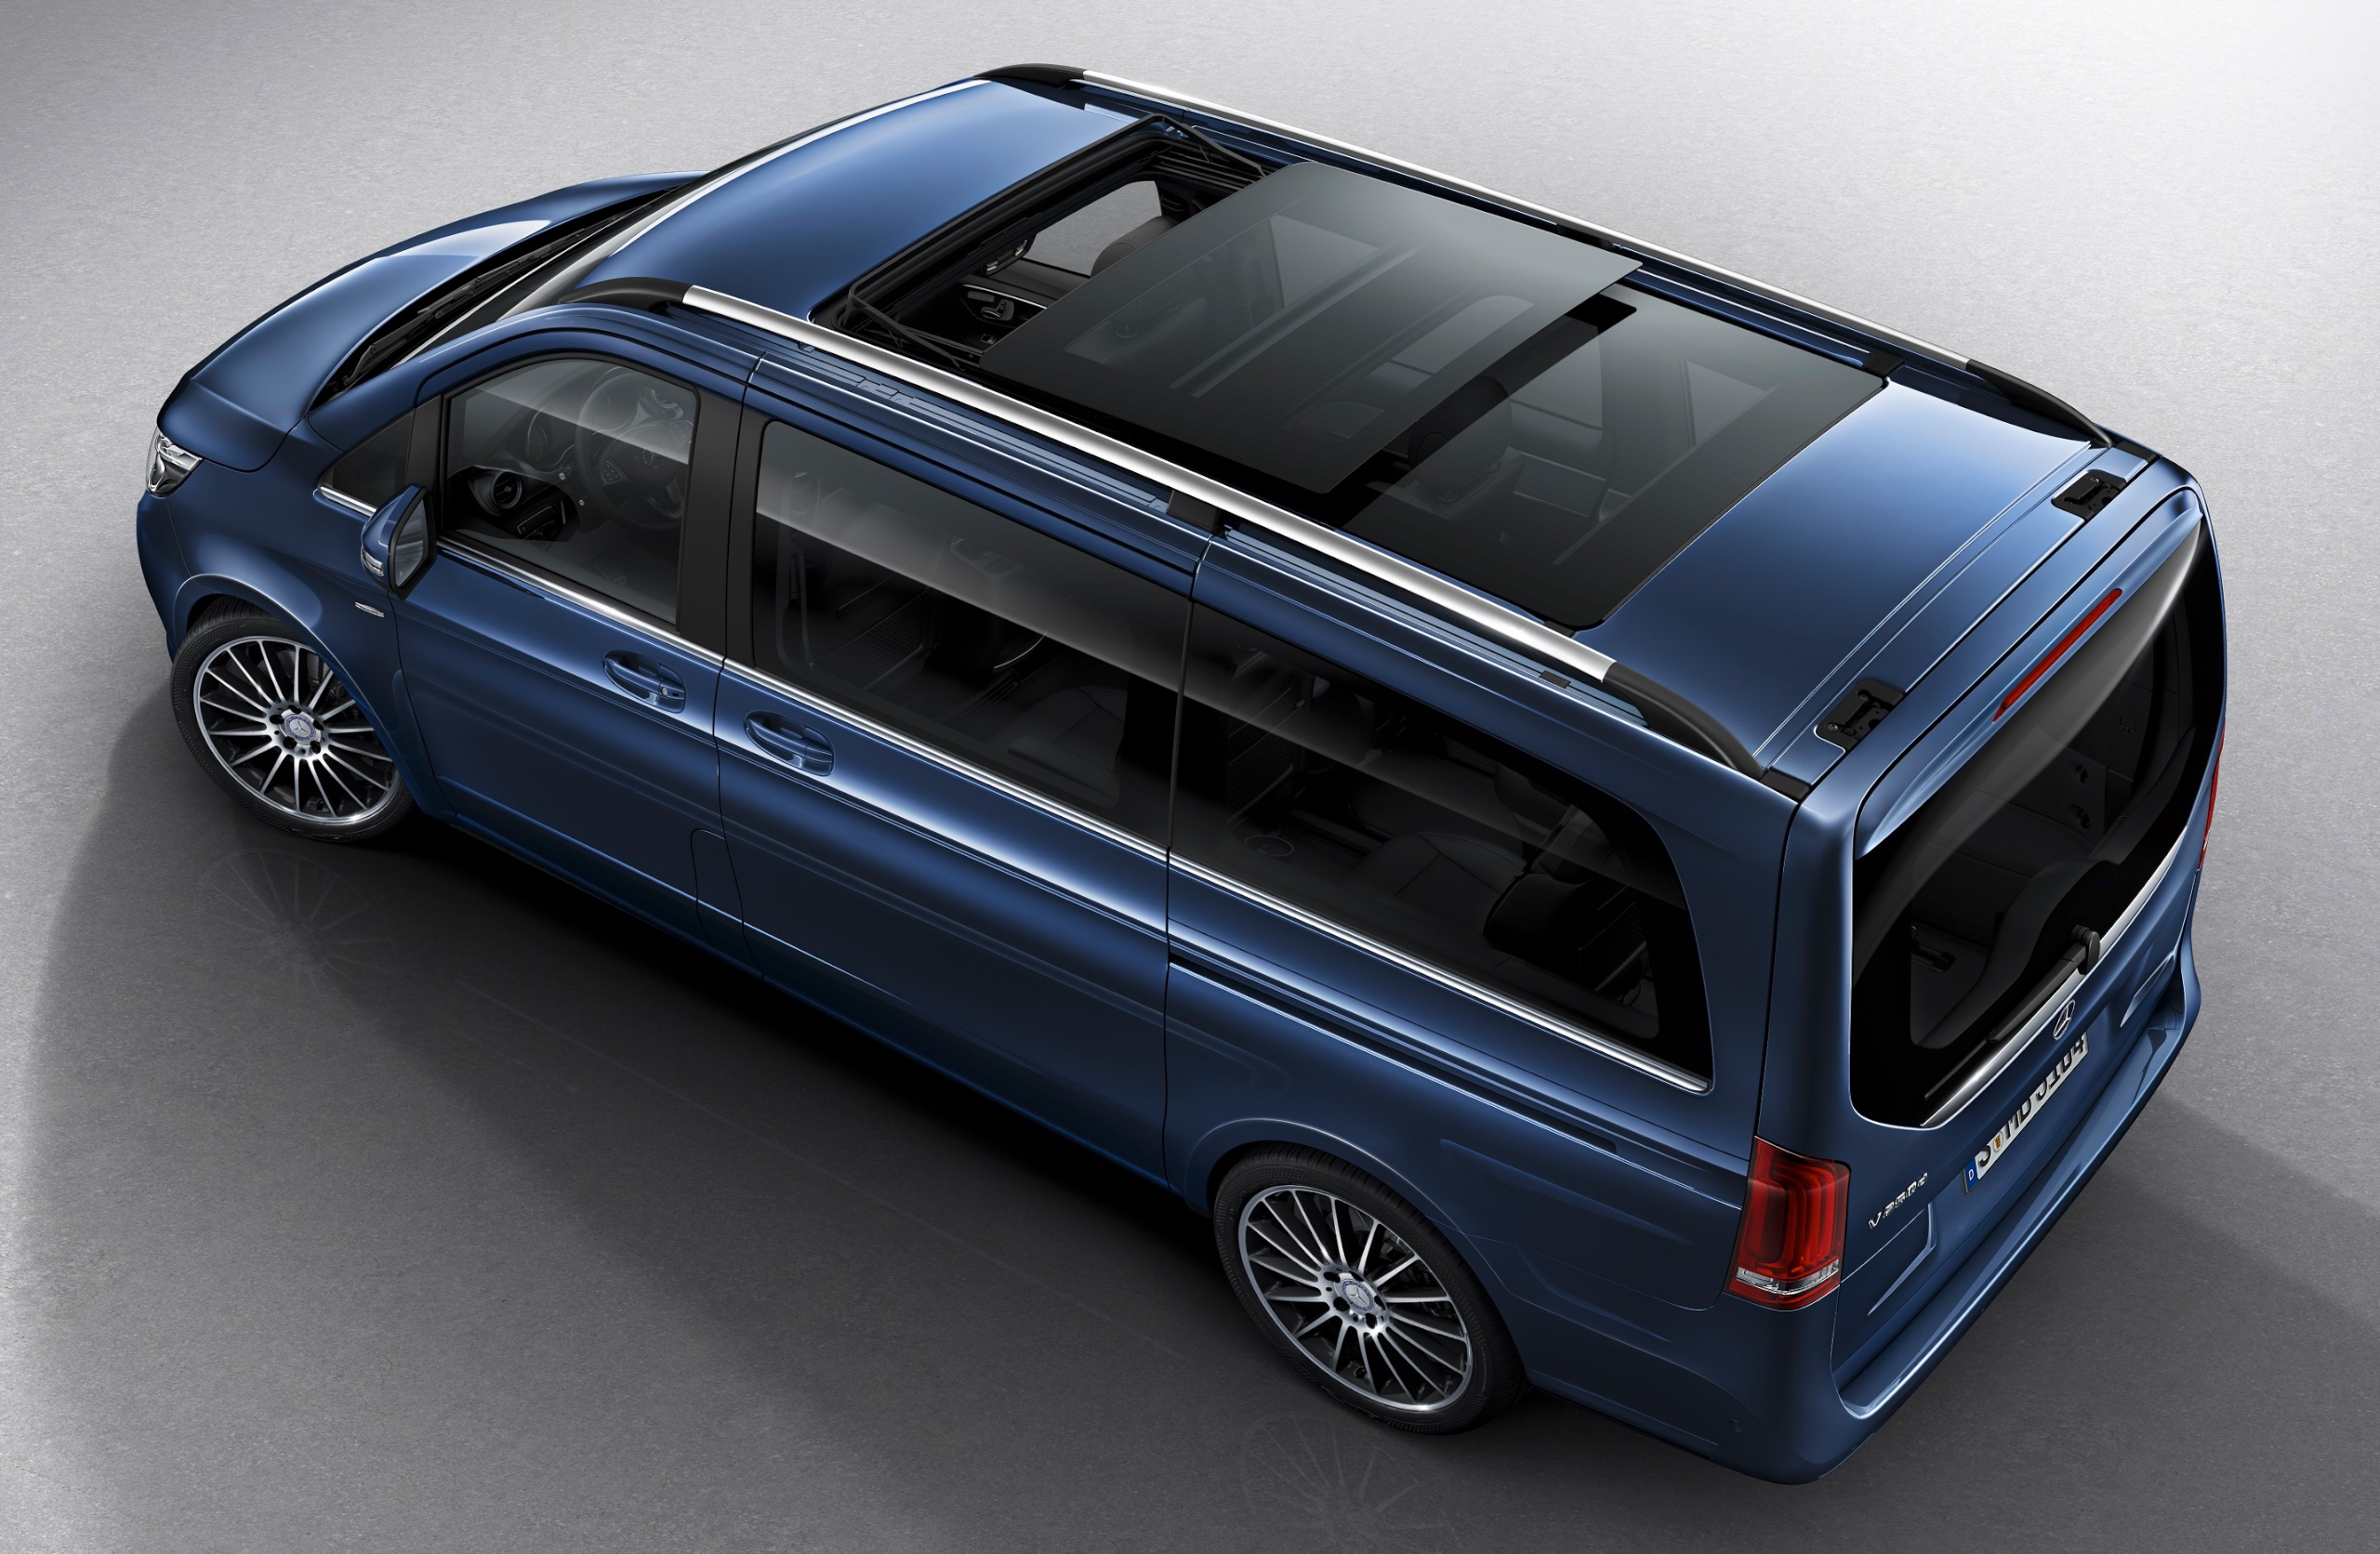 Mercedes-Benz V-Class MPV Updated For 2016